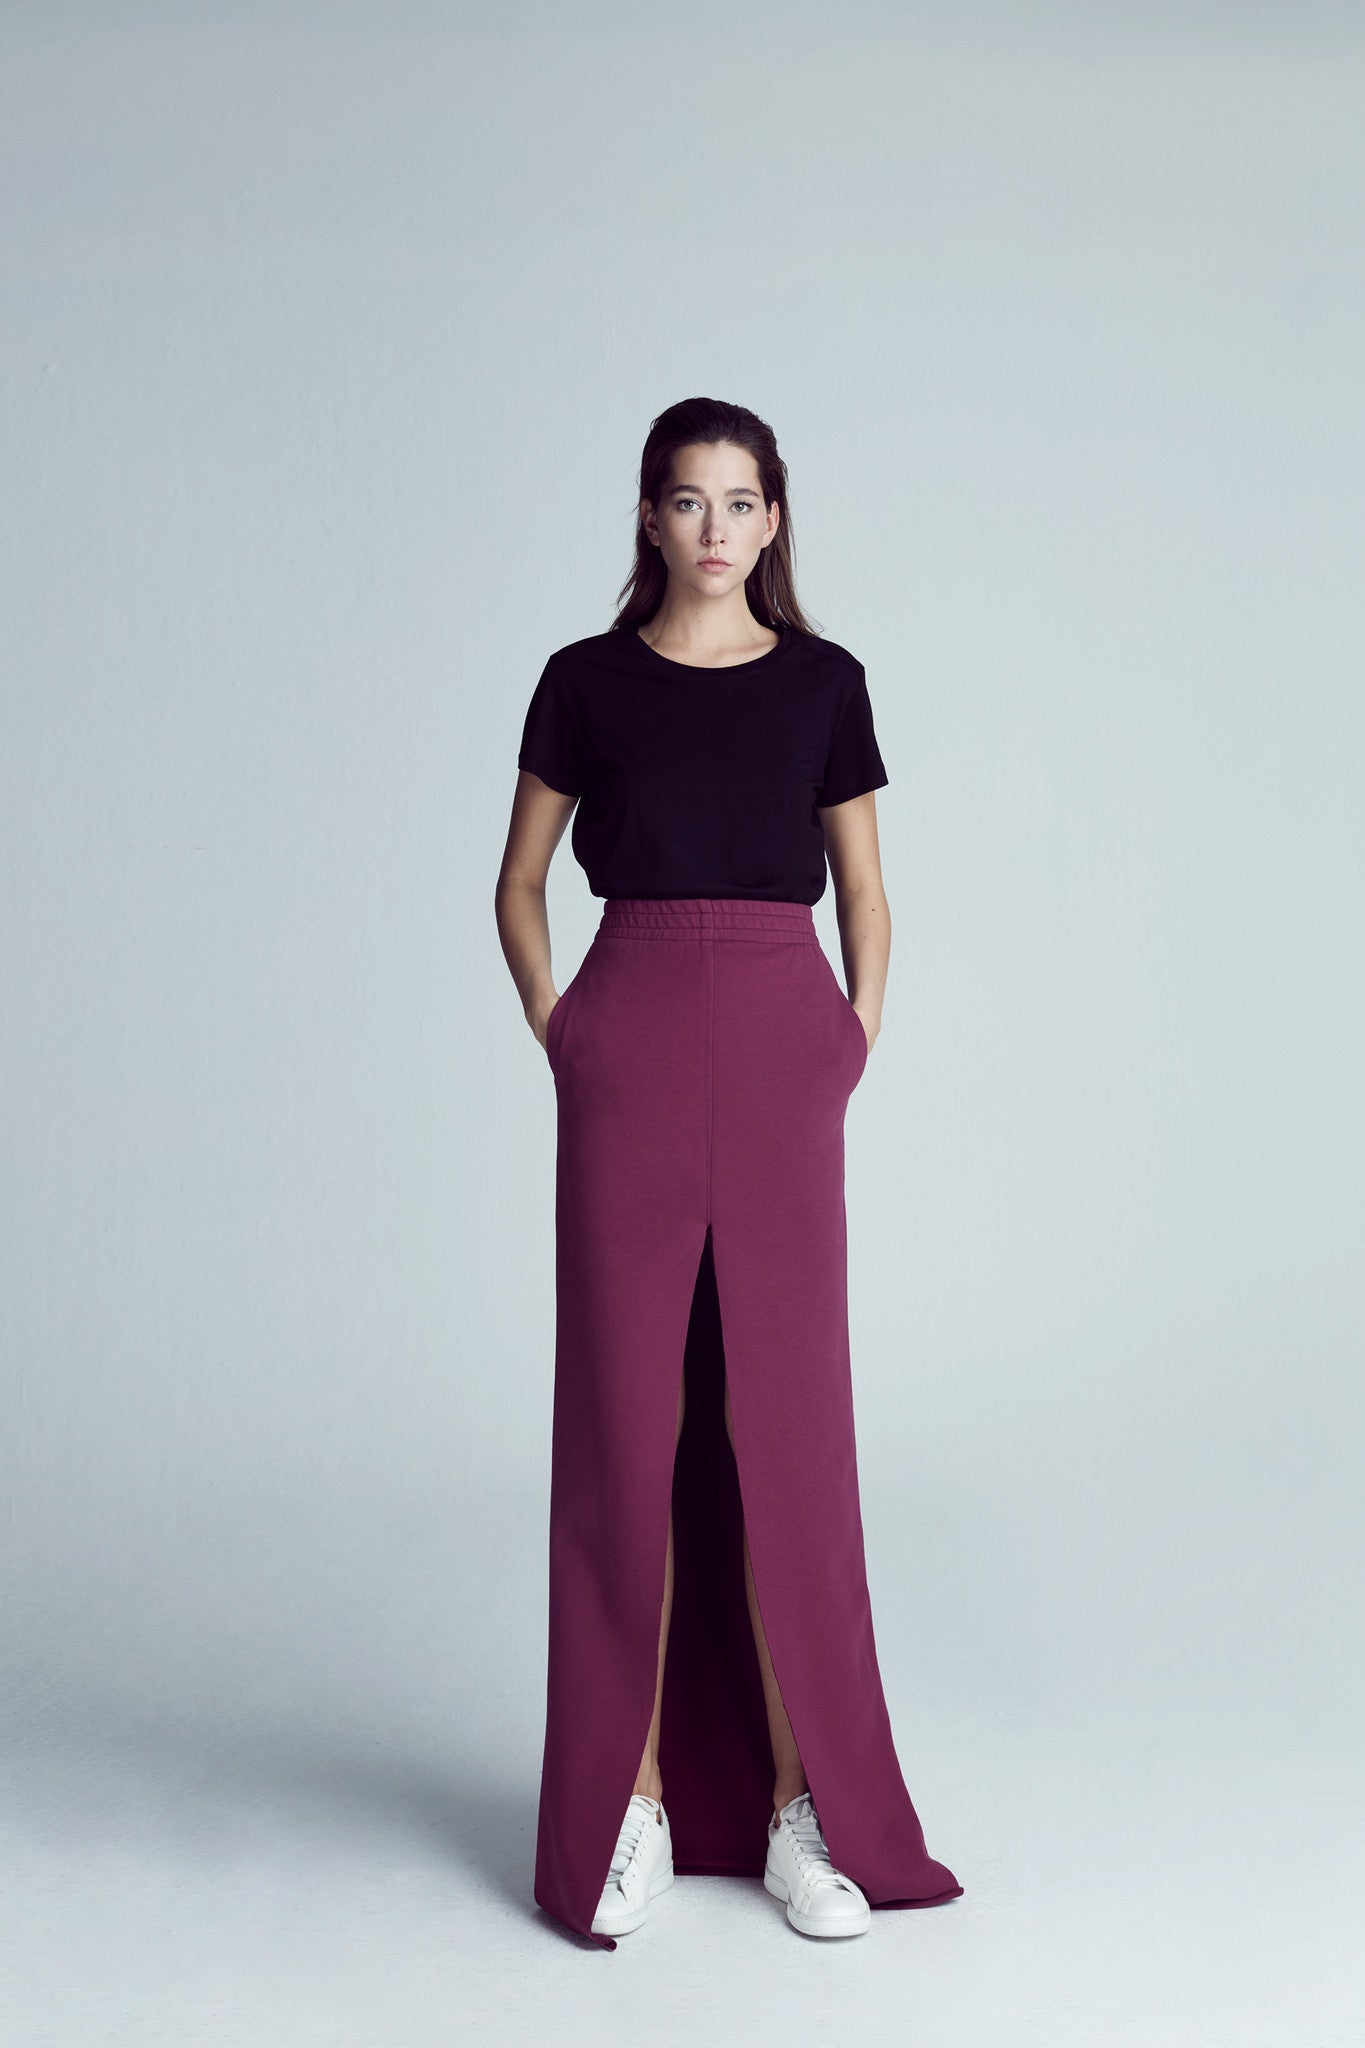 LOGO PRINTED MAXI SKIRT / BURGUNDY